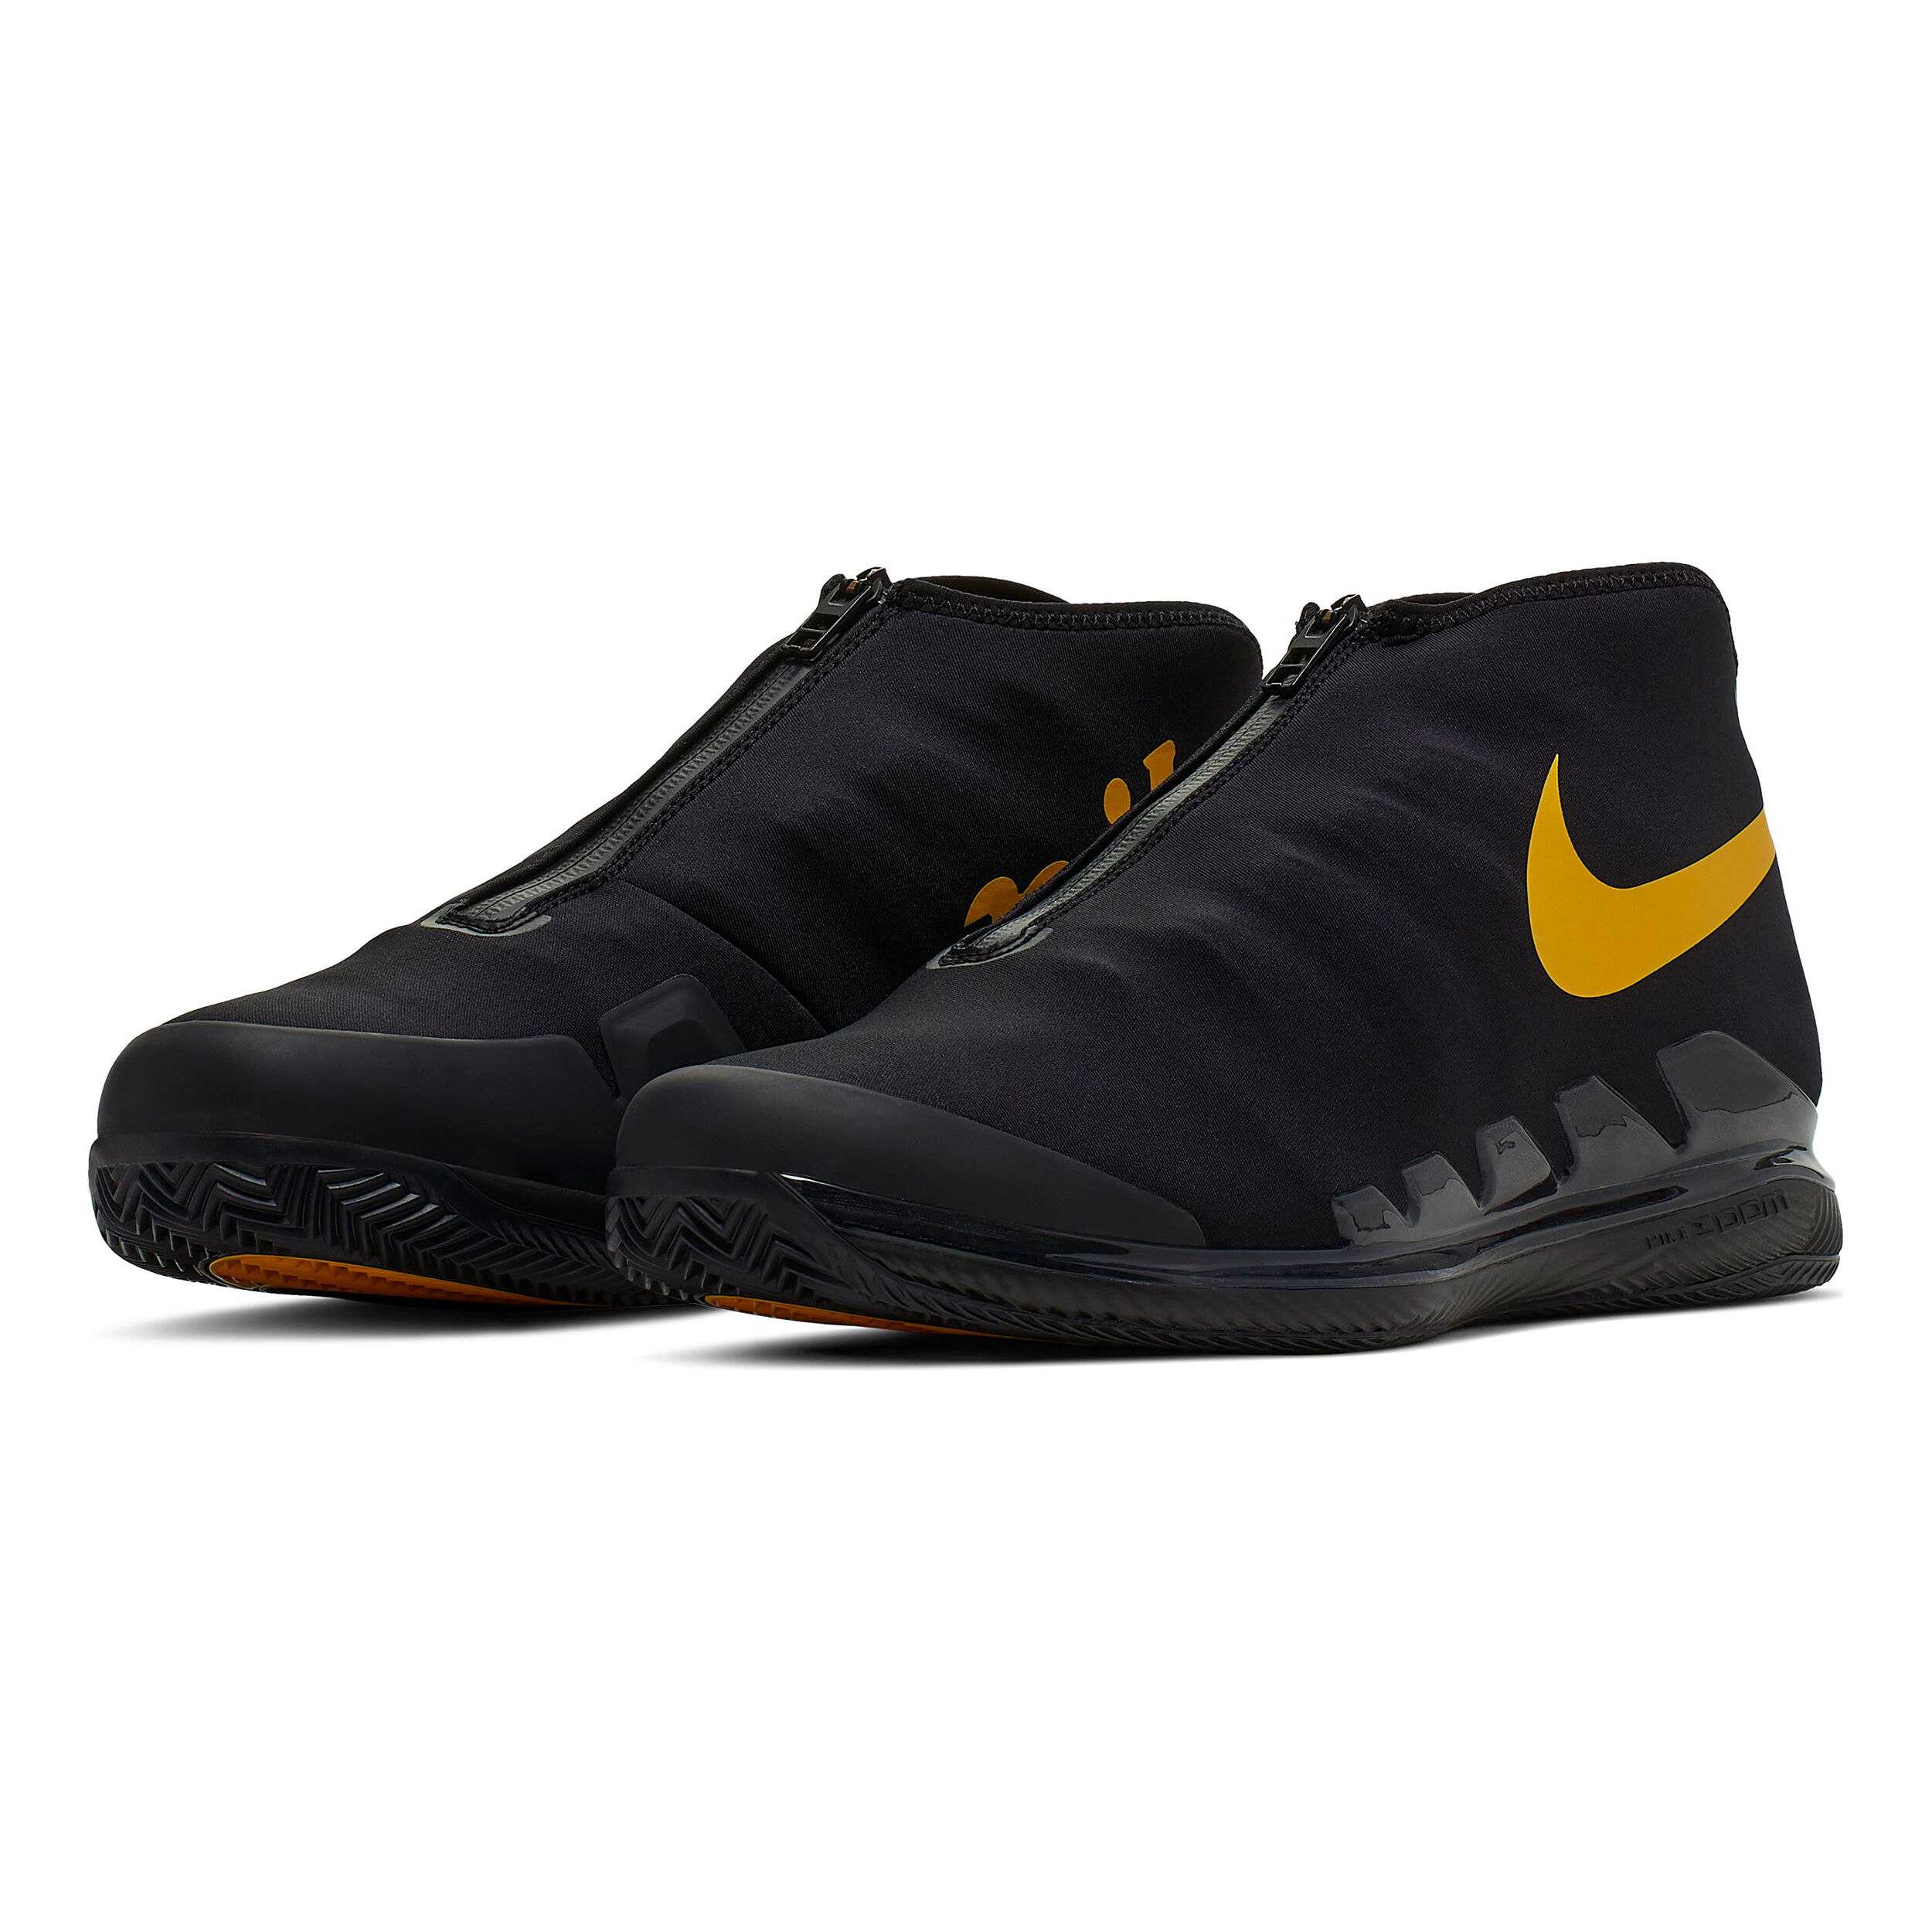 Nike Air Zoom Vapor Tour Glove 10 Heren